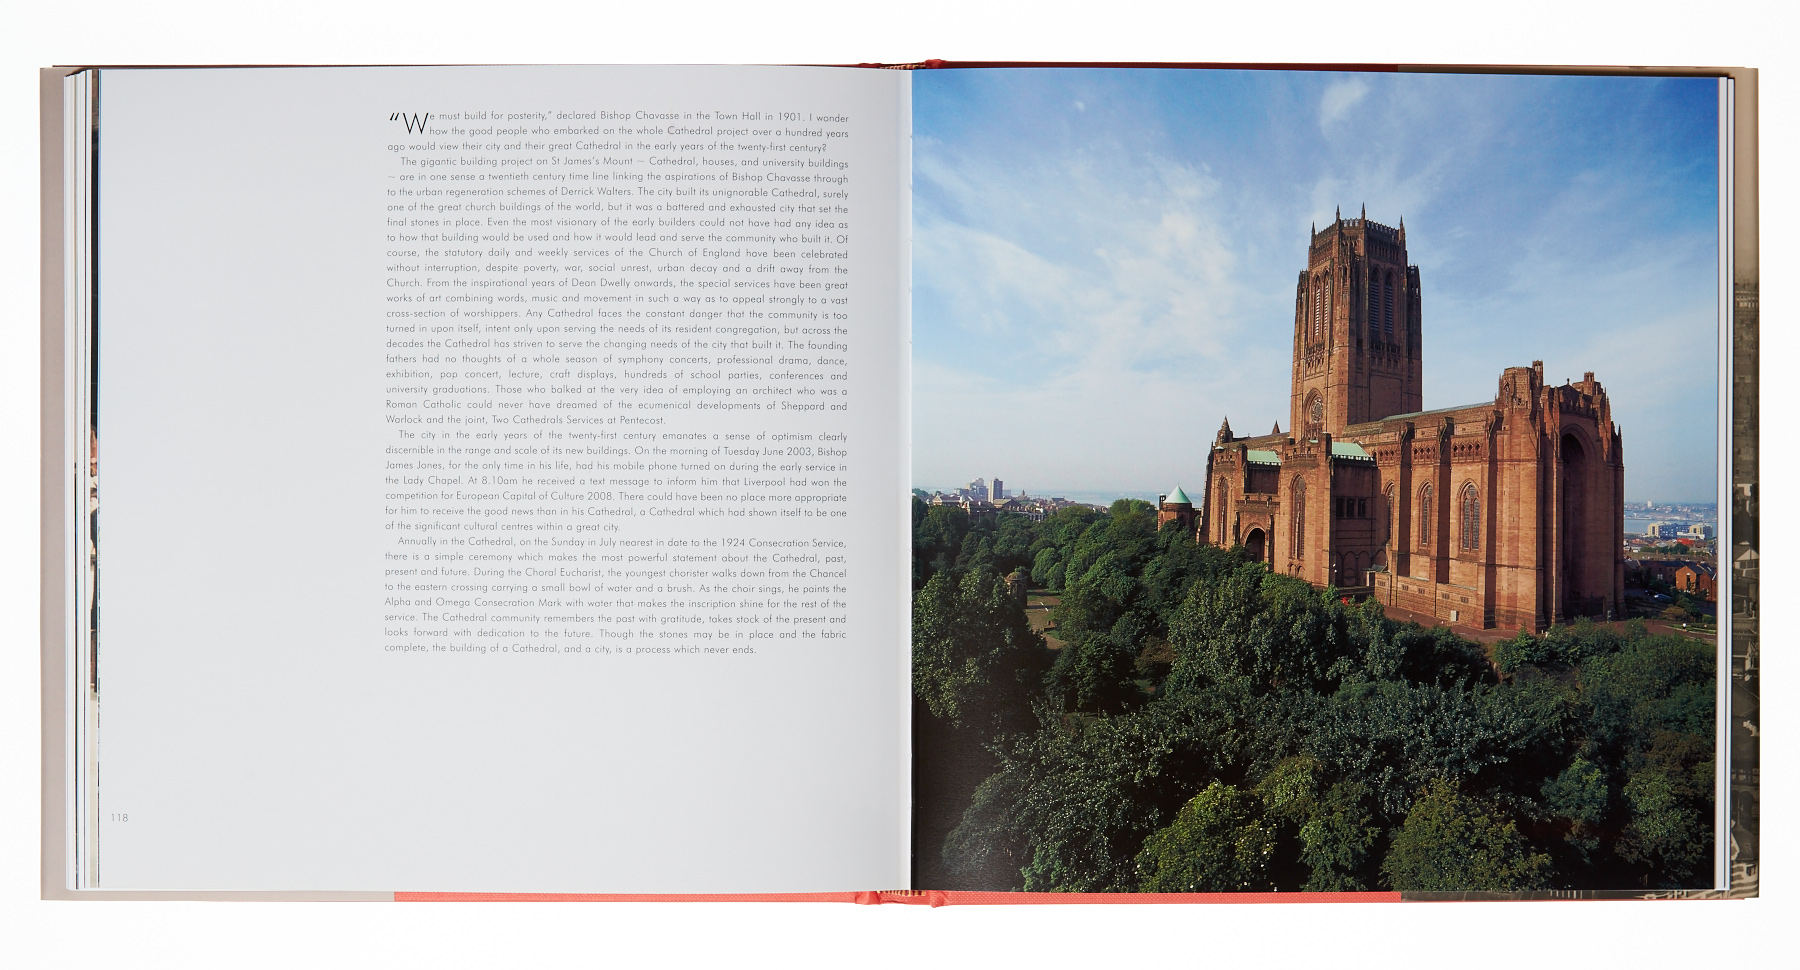 liverpool-cathedral-book-page-118.jpg